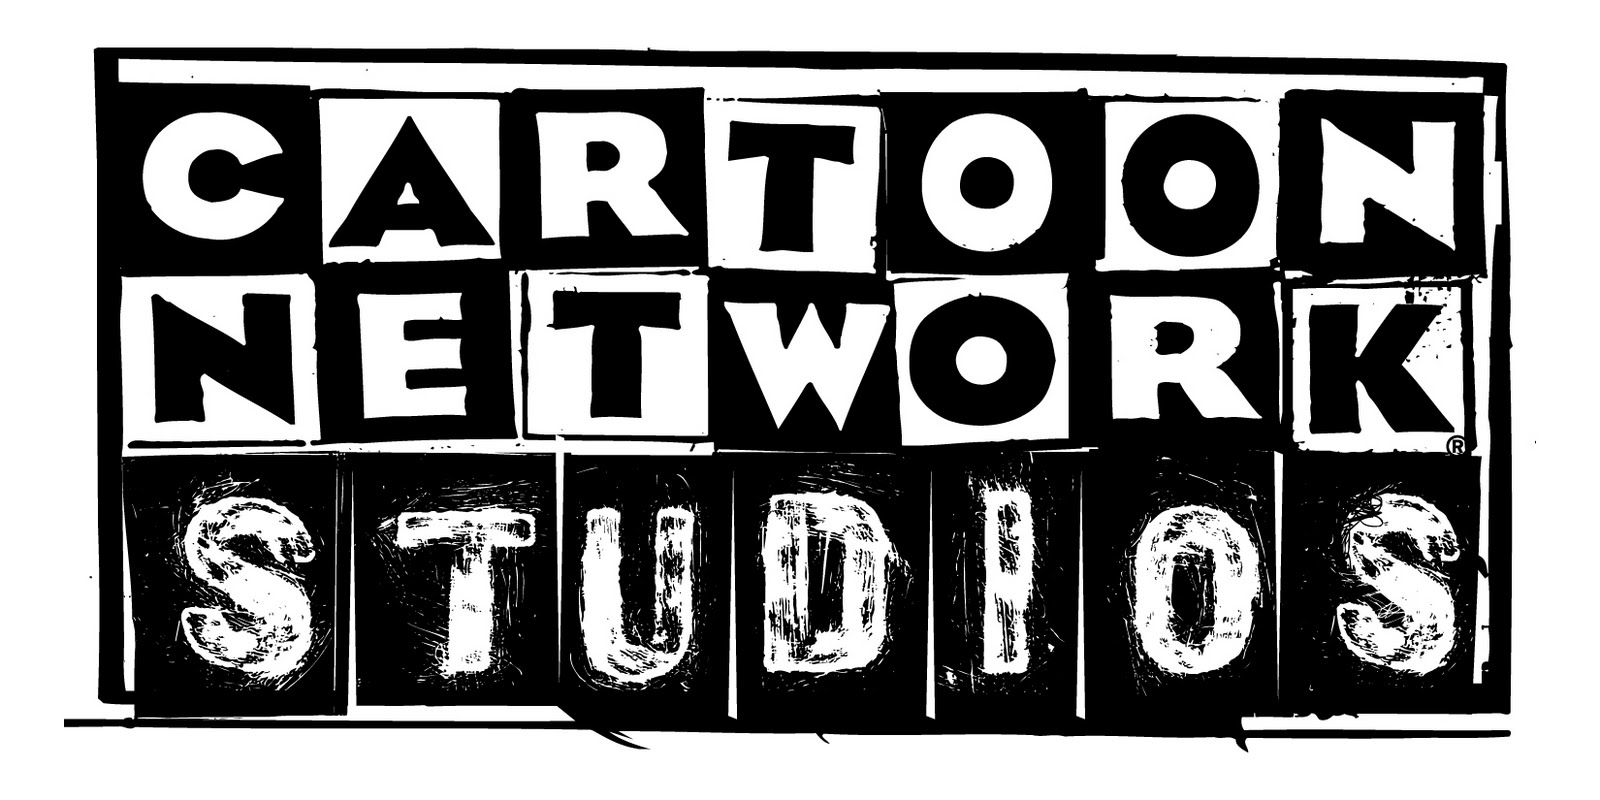 download cartoon network logo